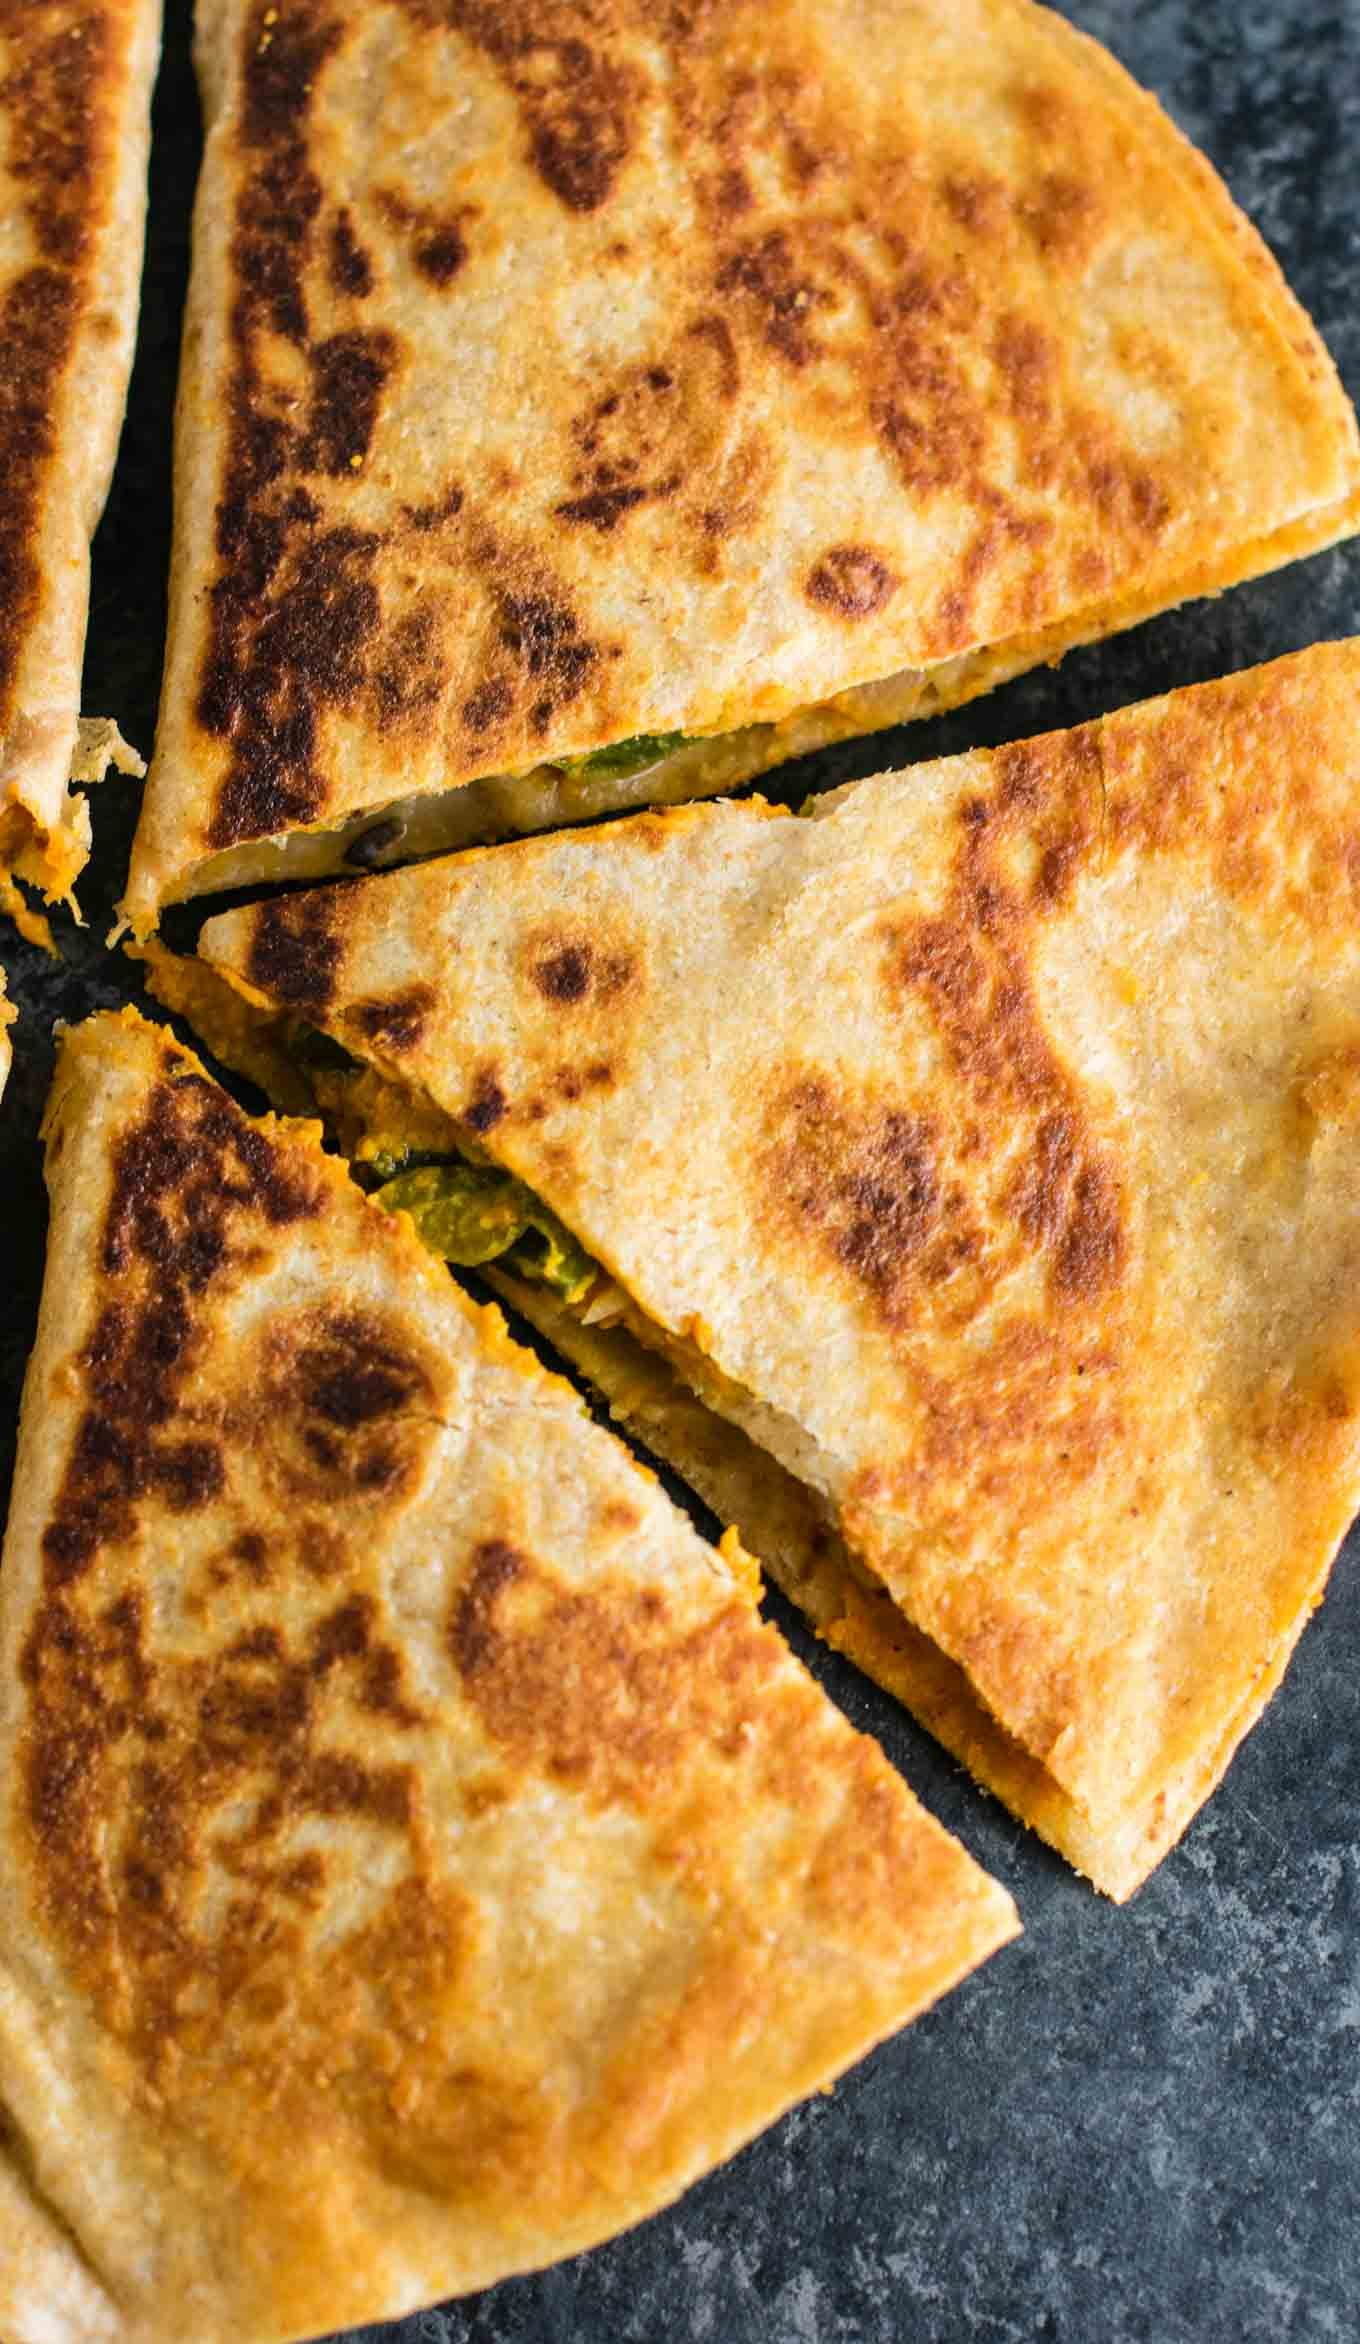 Easy Vegan Quesadillas Recipe Packed Full Of Protein And Flavor No Meat No Dairy No Vegan Cheese Vegan Party Food Quesadilla Recipes Vegan Recipes Healthy